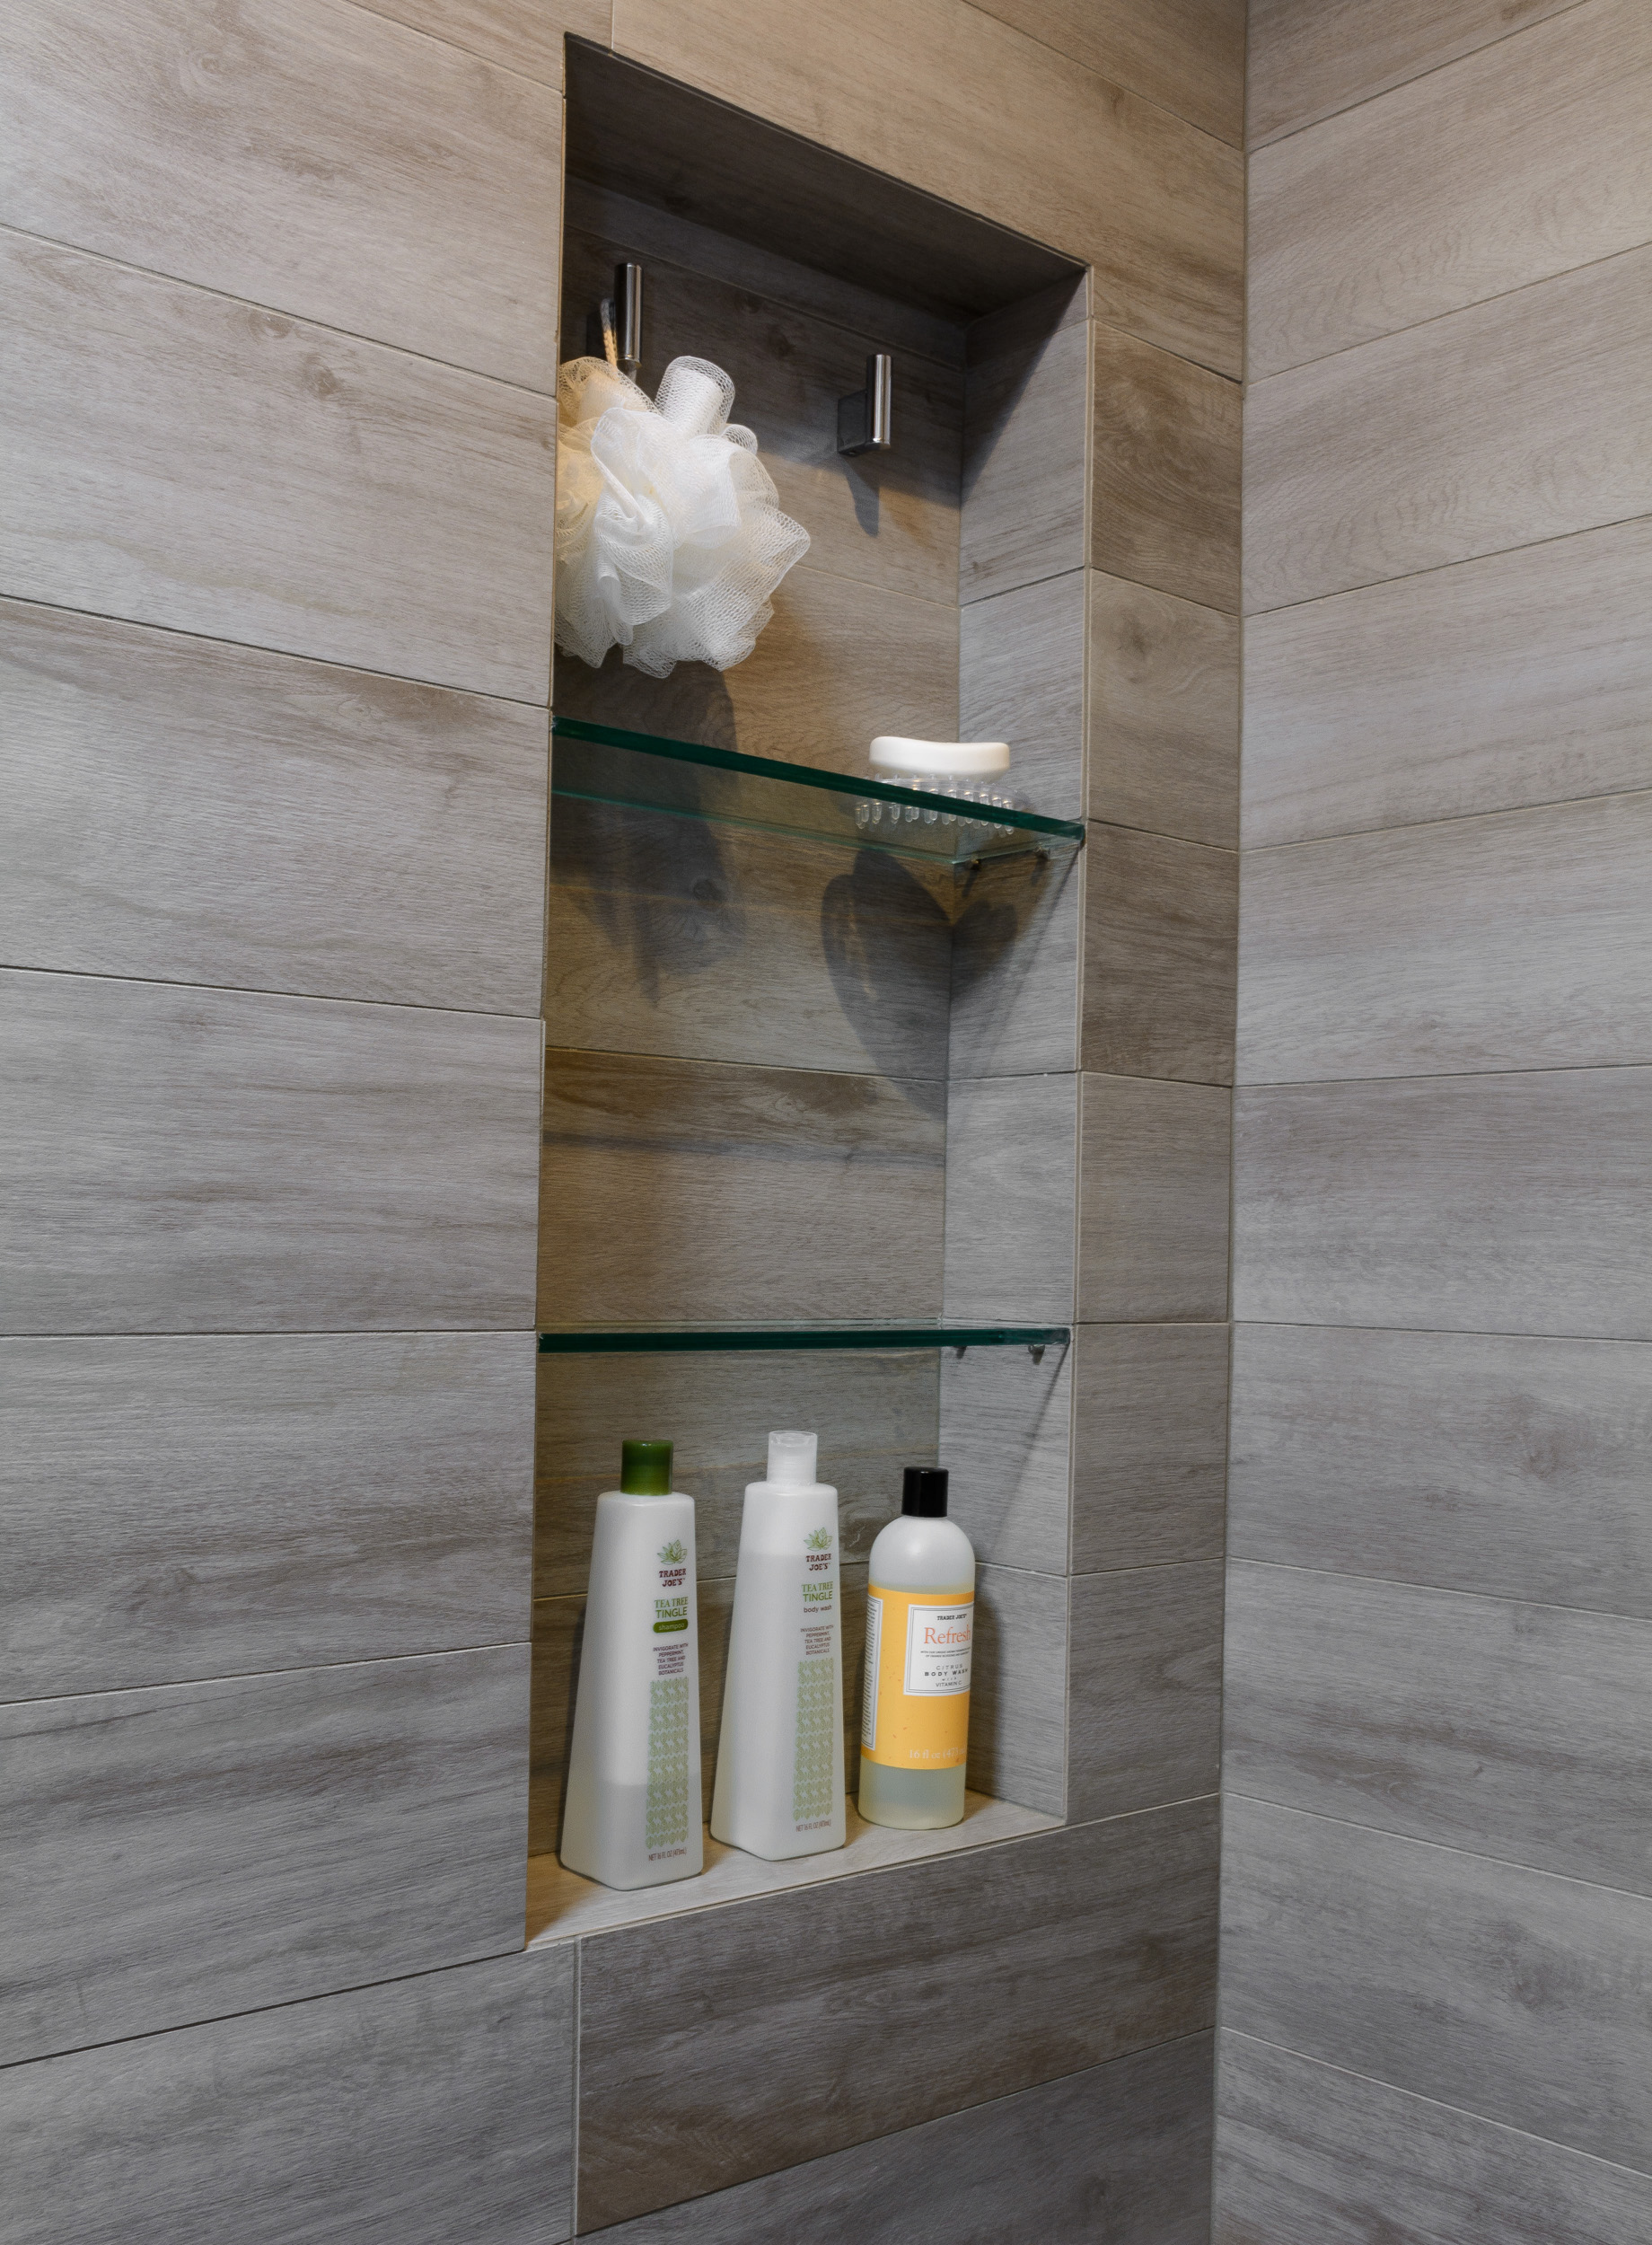 Weathered wood looking shower niche with glass shelves and hooks